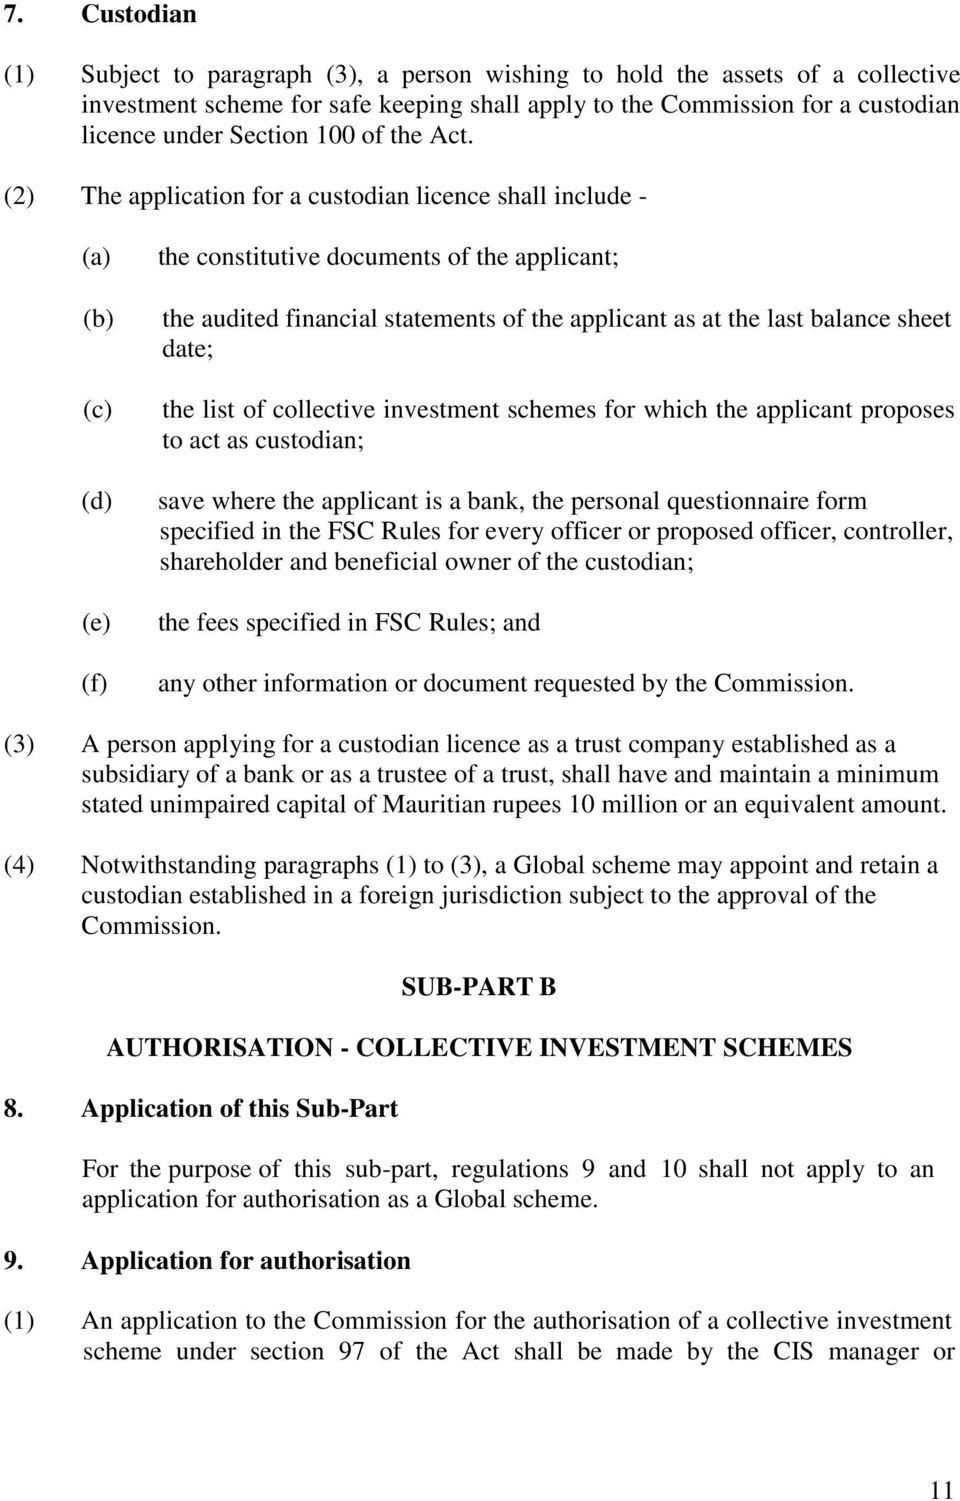 (2) The application for a custodian licence shall include - (d) (e) (f) the constitutive documents of the applicant; the audited financial statements of the applicant as at the last balance sheet